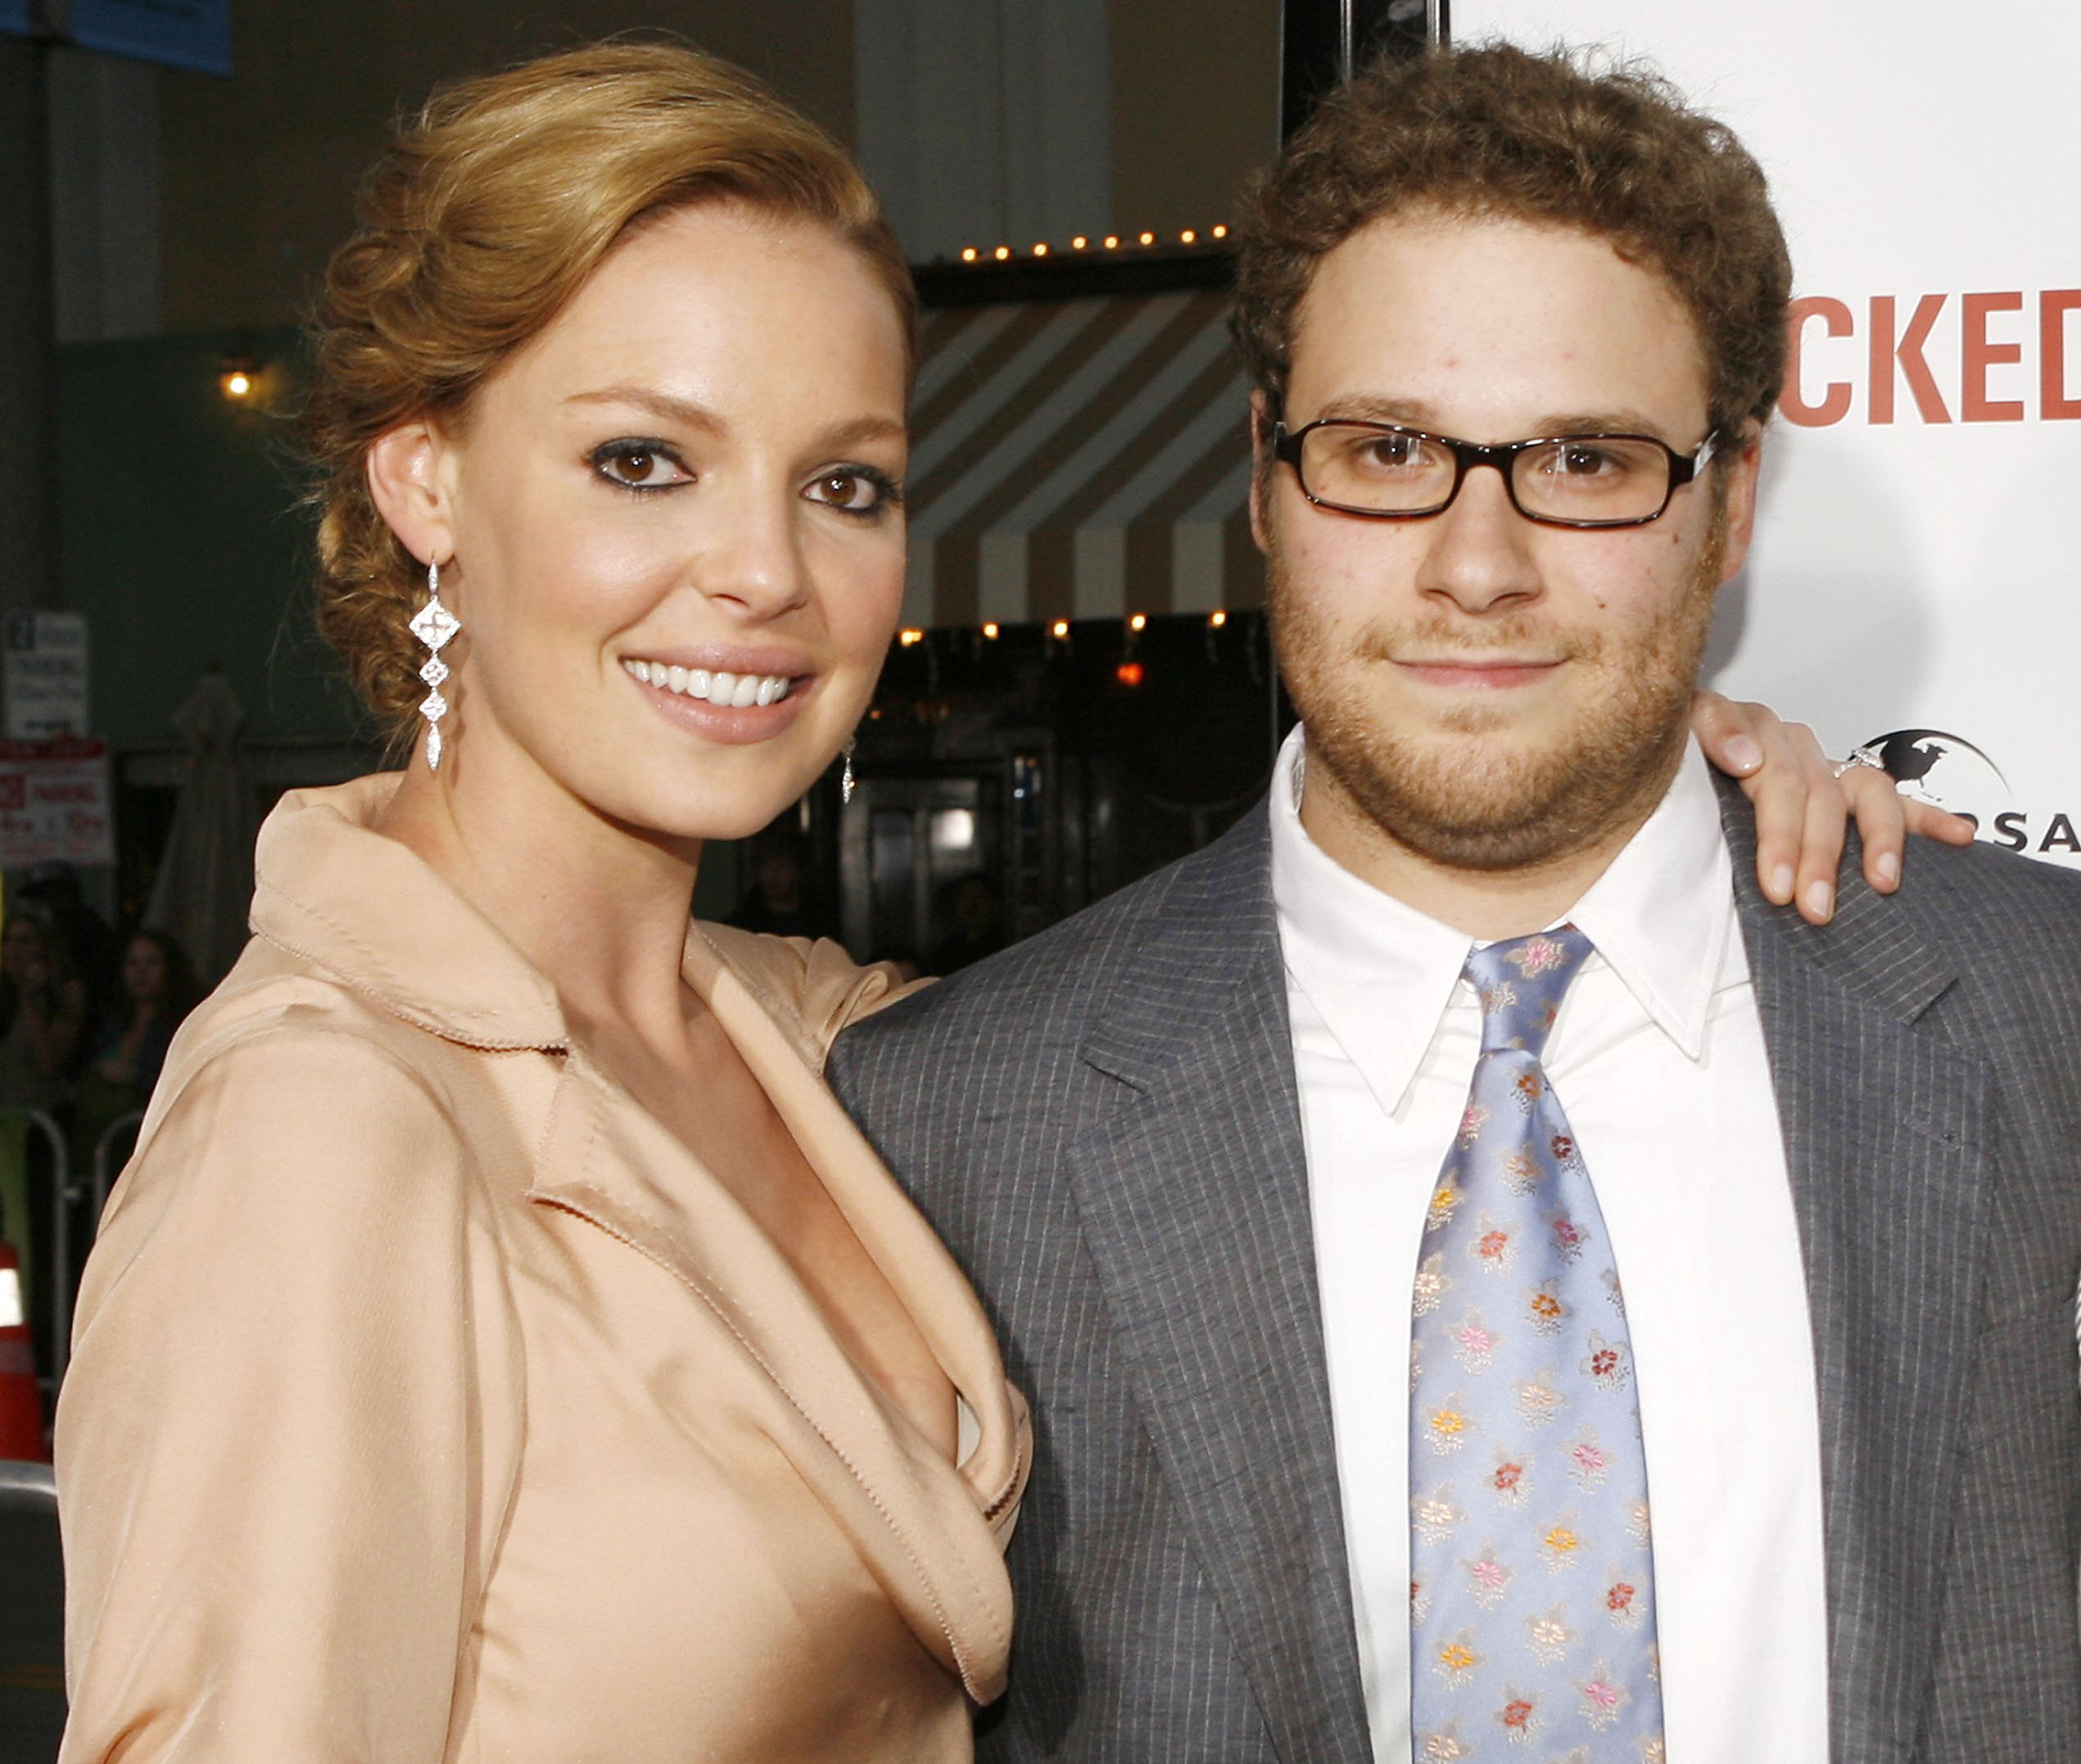 """Katherine Heigl and Seth Rogen at the premiere of """"Knocked Up"""" on May 21, 2007 in Los Angeles, California."""